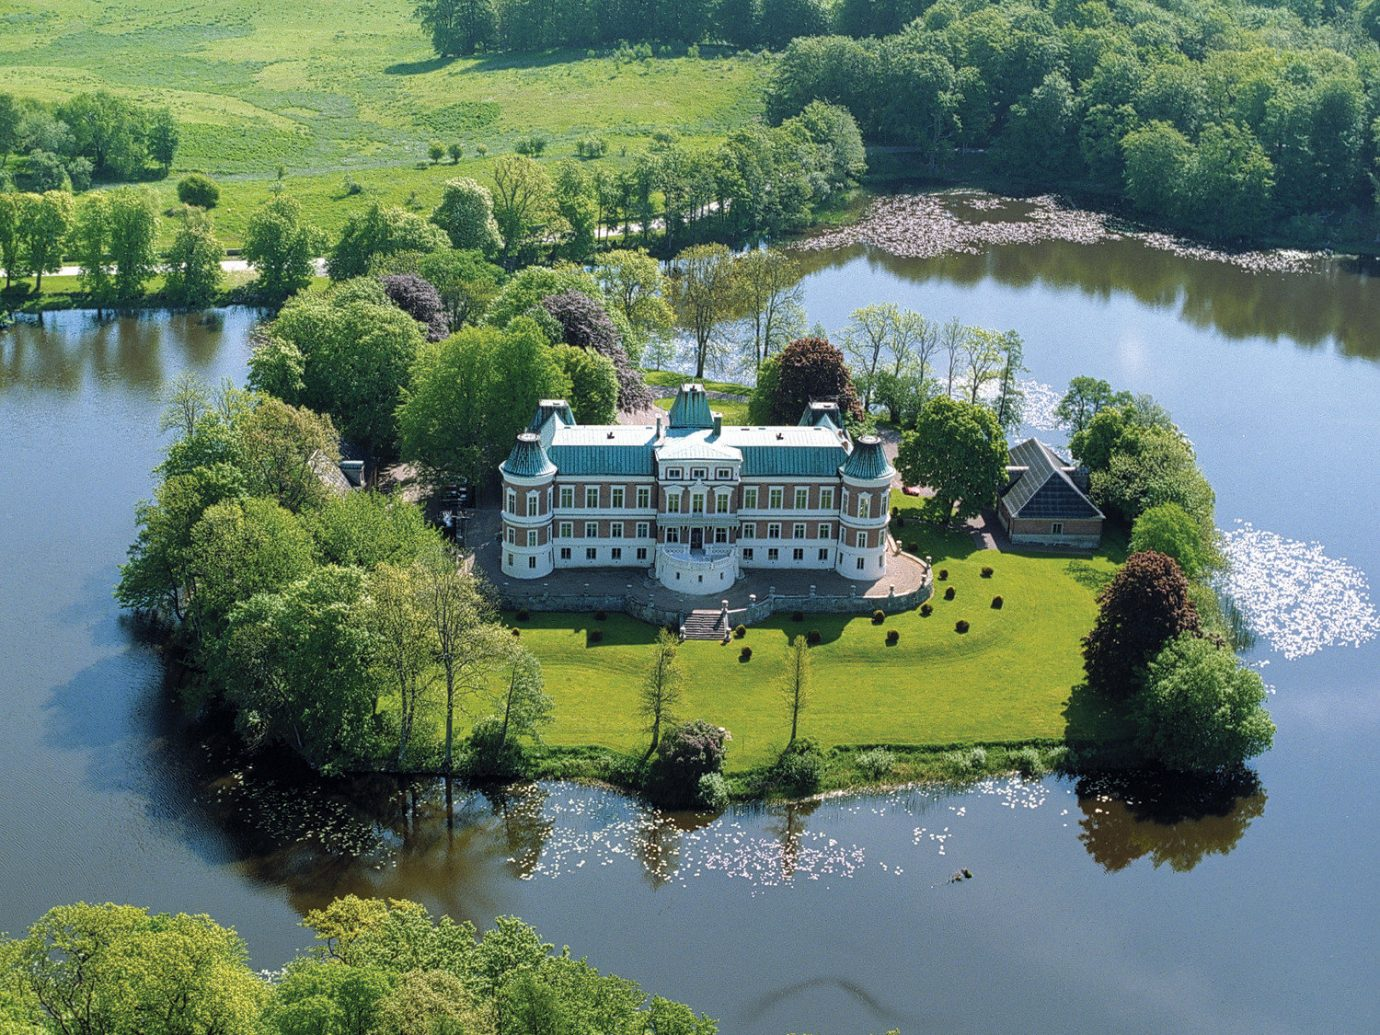 Hotels tree water outdoor aerial photography mountain River reflection Lake reservoir Nature loch vehicle fjord landscape rural area waterway pond wetland surrounded Garden shore lush